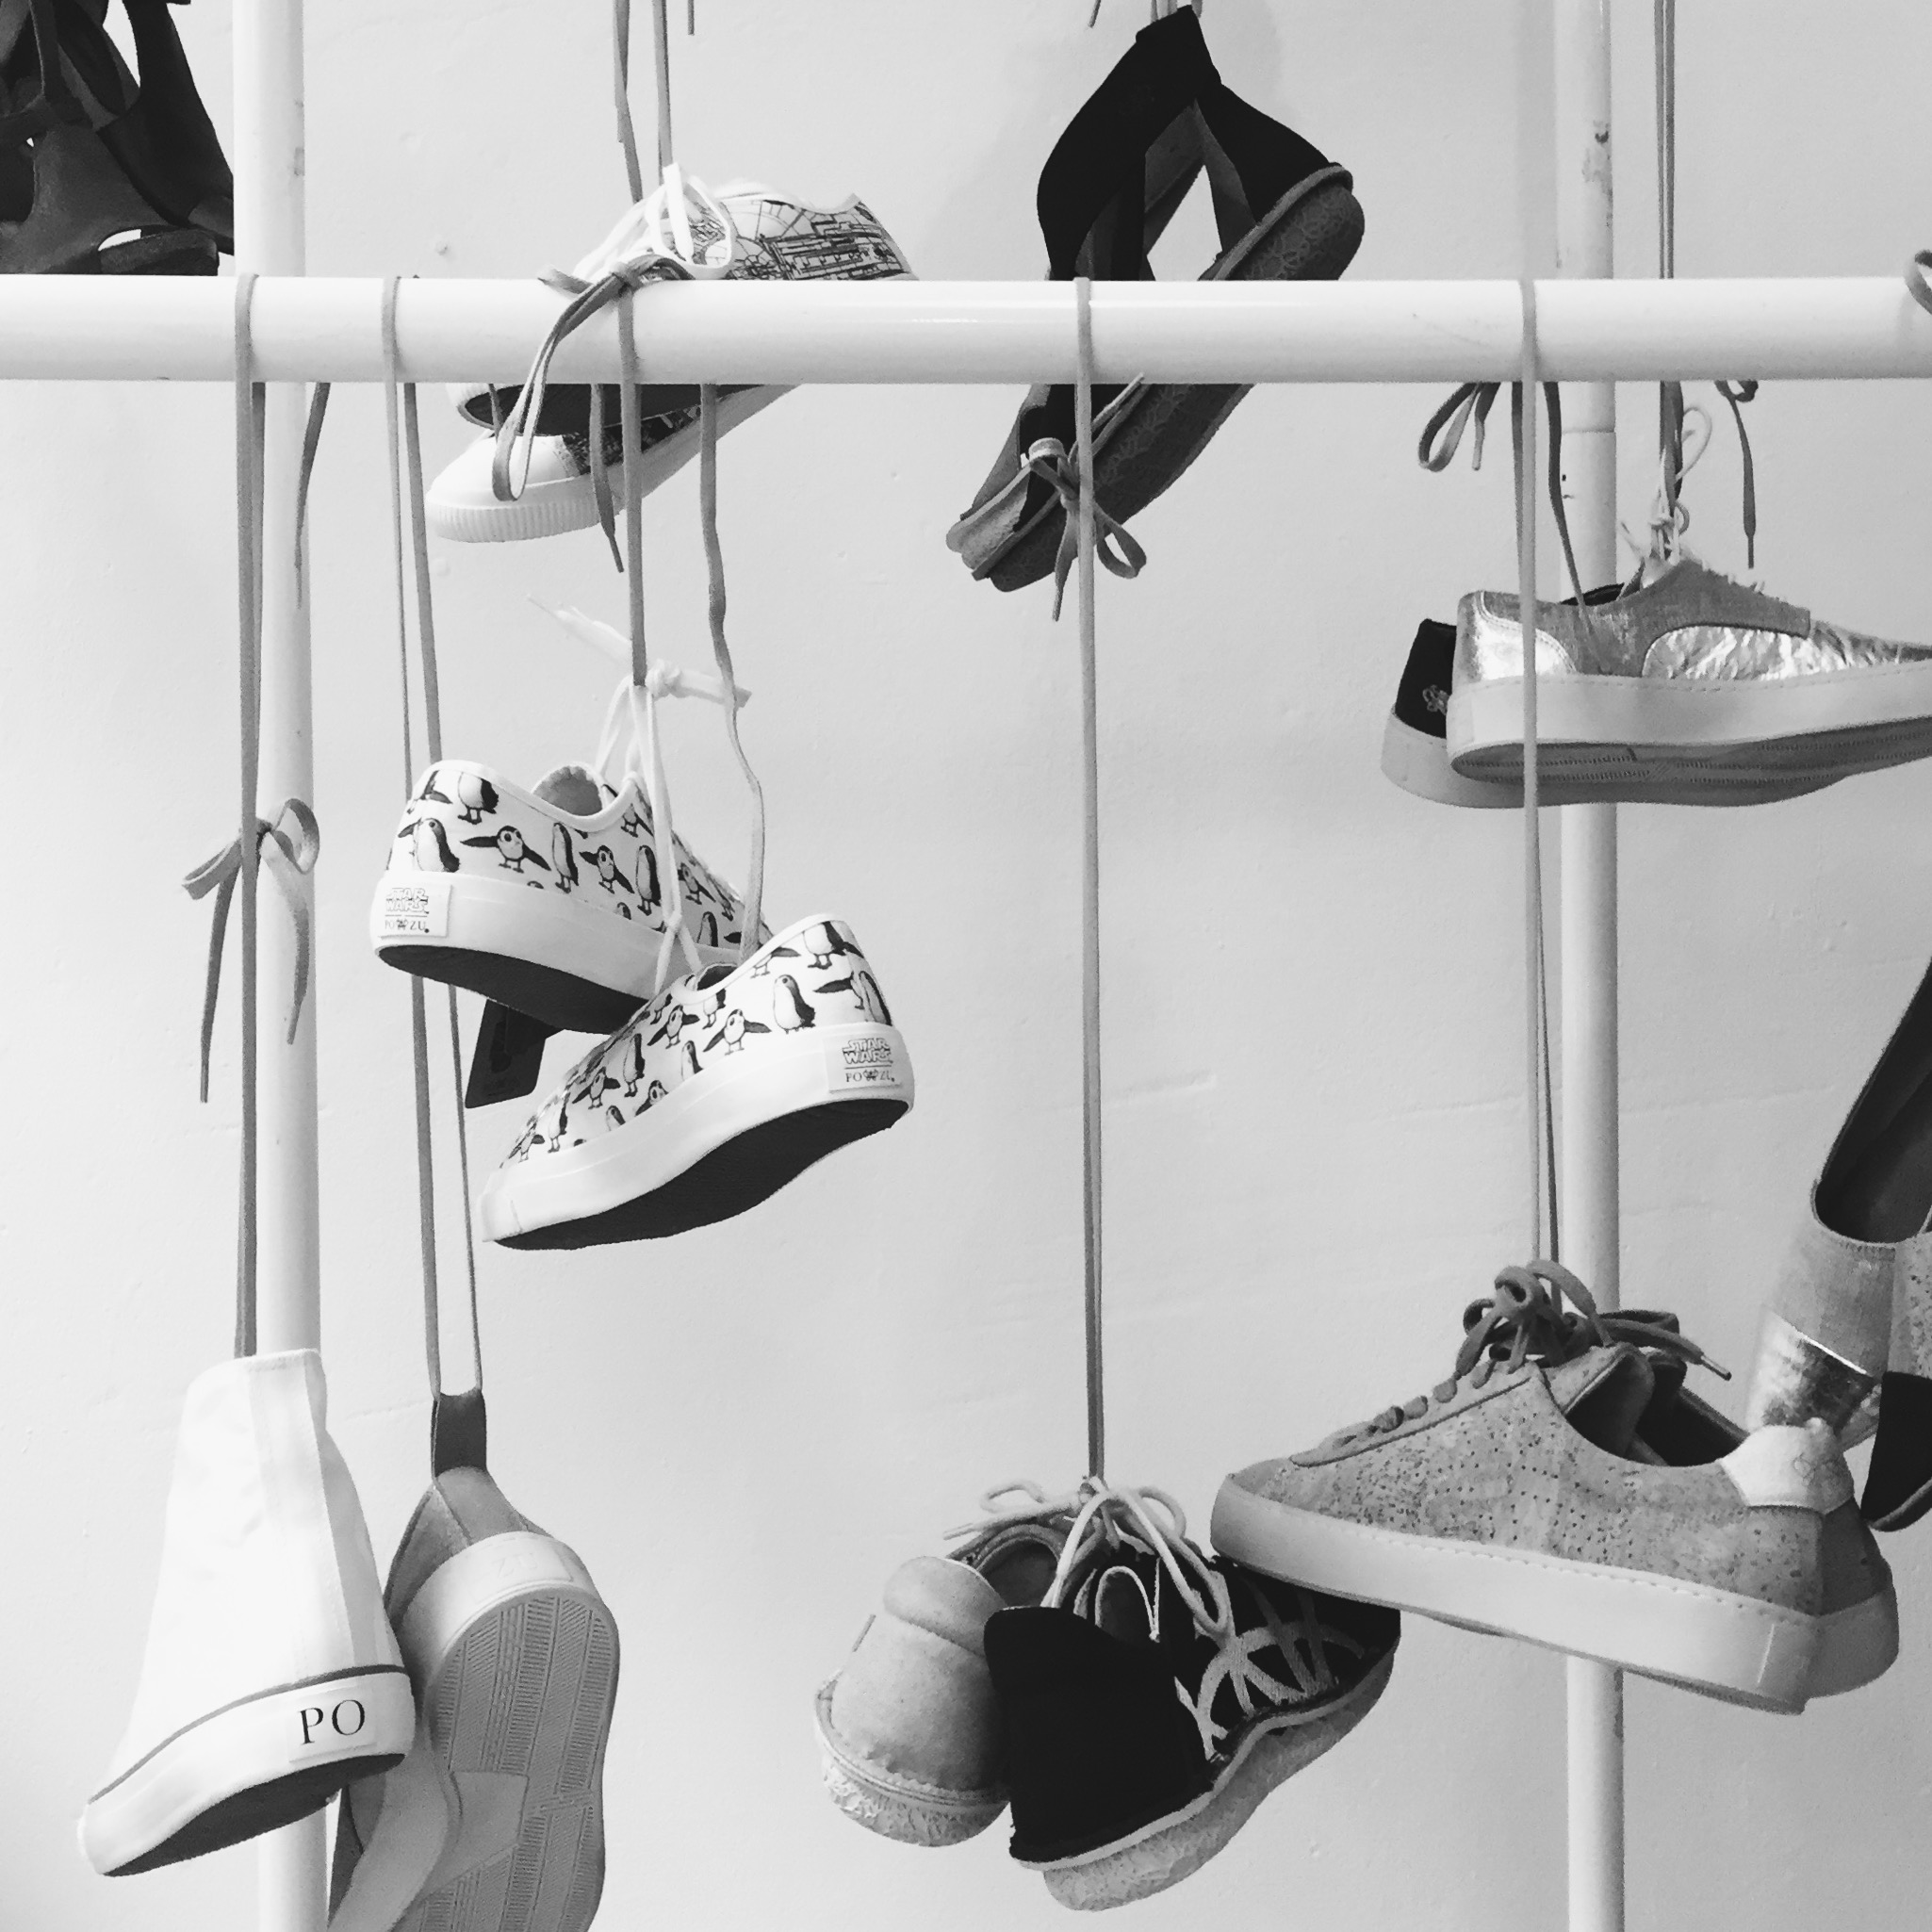 Pozu's vegan footwear collection on display